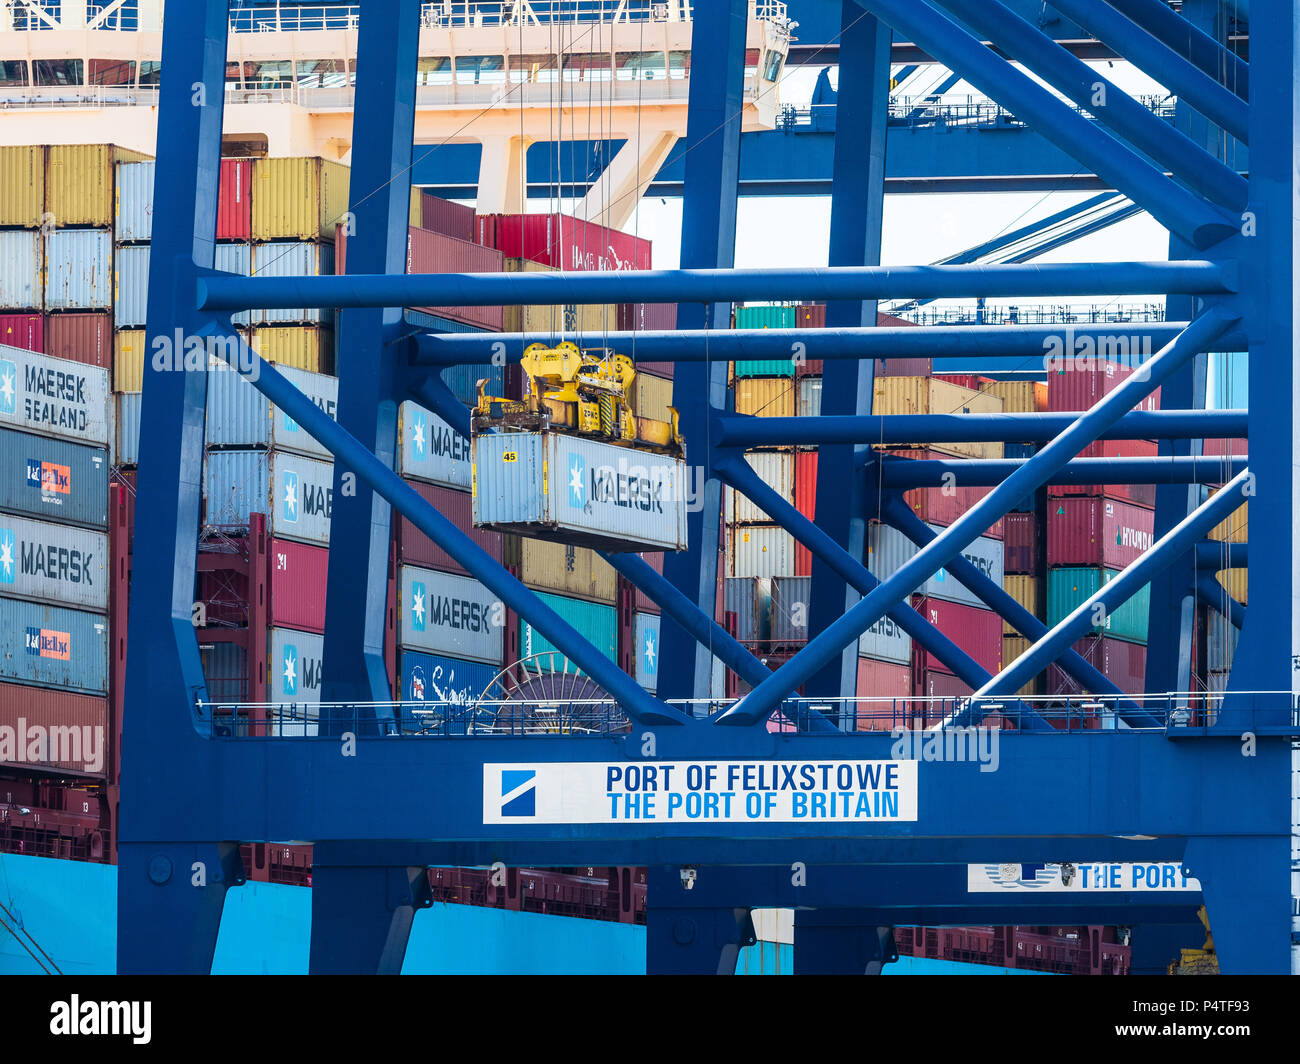 International Trade, World Trade. Container ships unload and load containers at the Port of Felixstowe, the UK's largest container port. Stock Photo